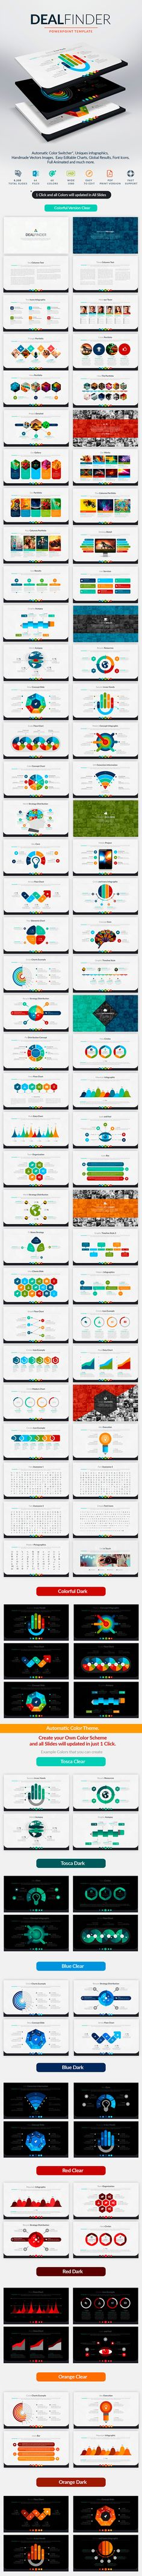 Deal Finder - Powerpoint Template. Download here: http://graphicriver.net/item/deal-finder-powerpoint-template/14930669?ref=ksioks